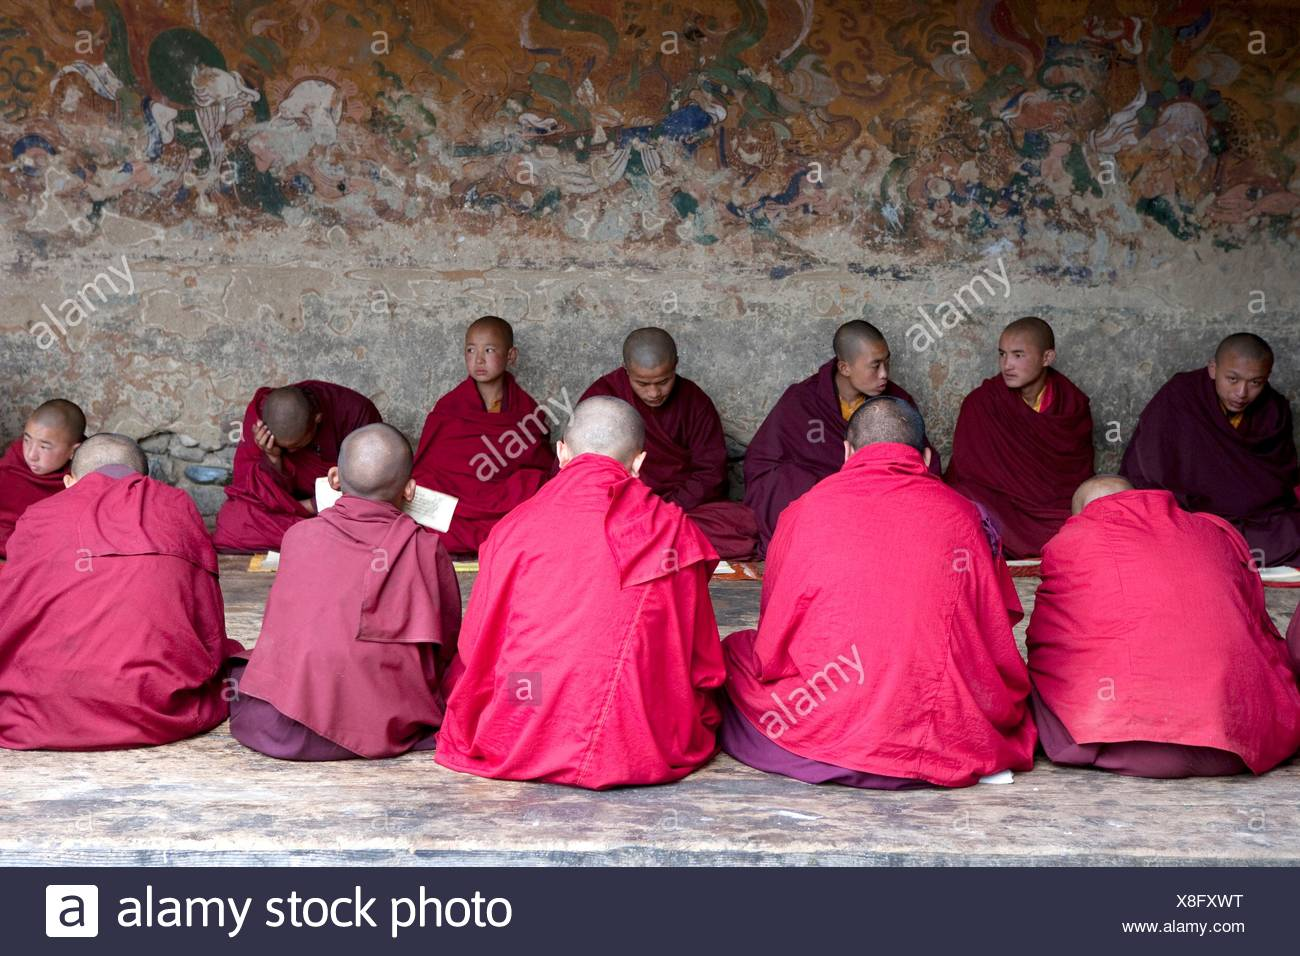 Monks chanting in the temple - Stock Image